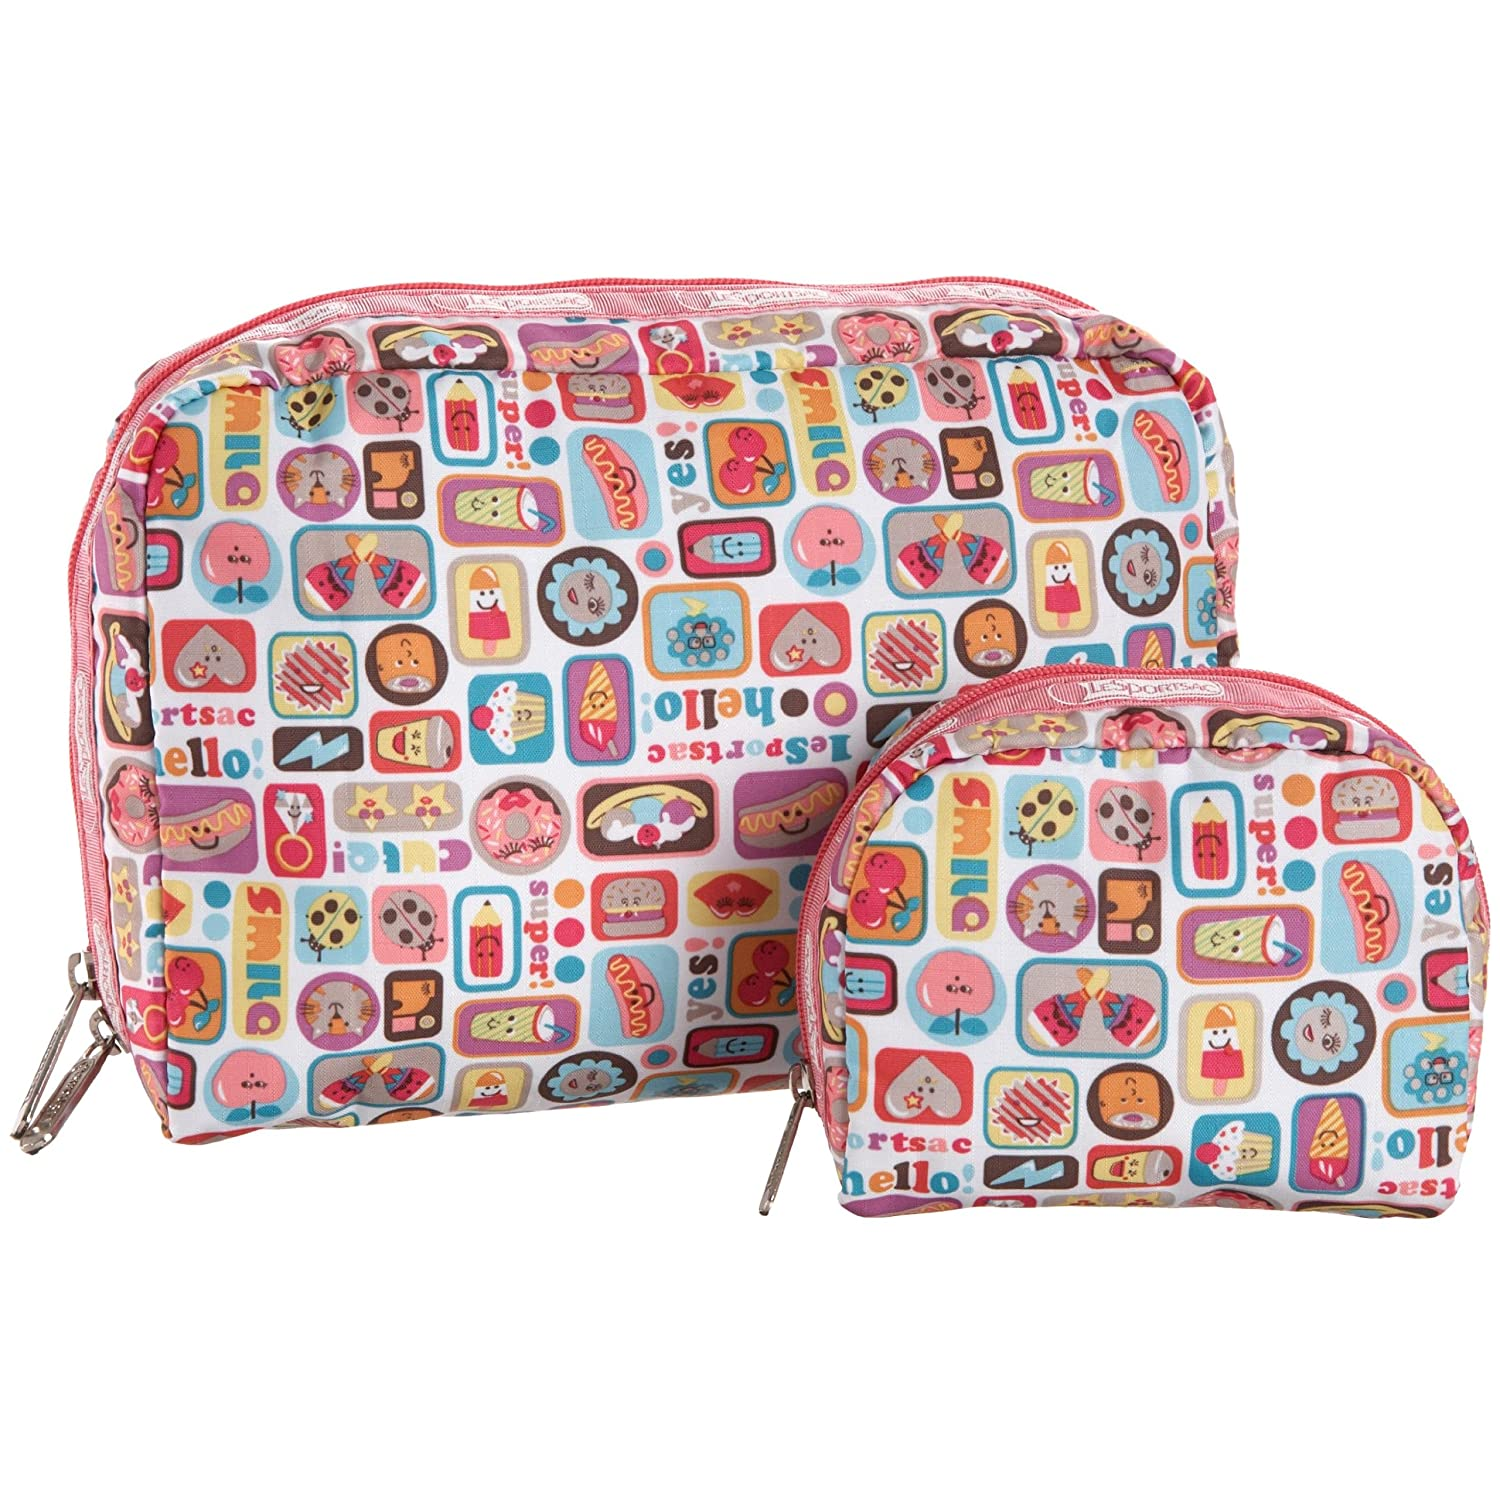 LeSportsac - Xl Rectangular And Square Cosmetic Case :  cosmetic case lesportsac xi rectangular sqaure cosmetic case makeup case lesportsac